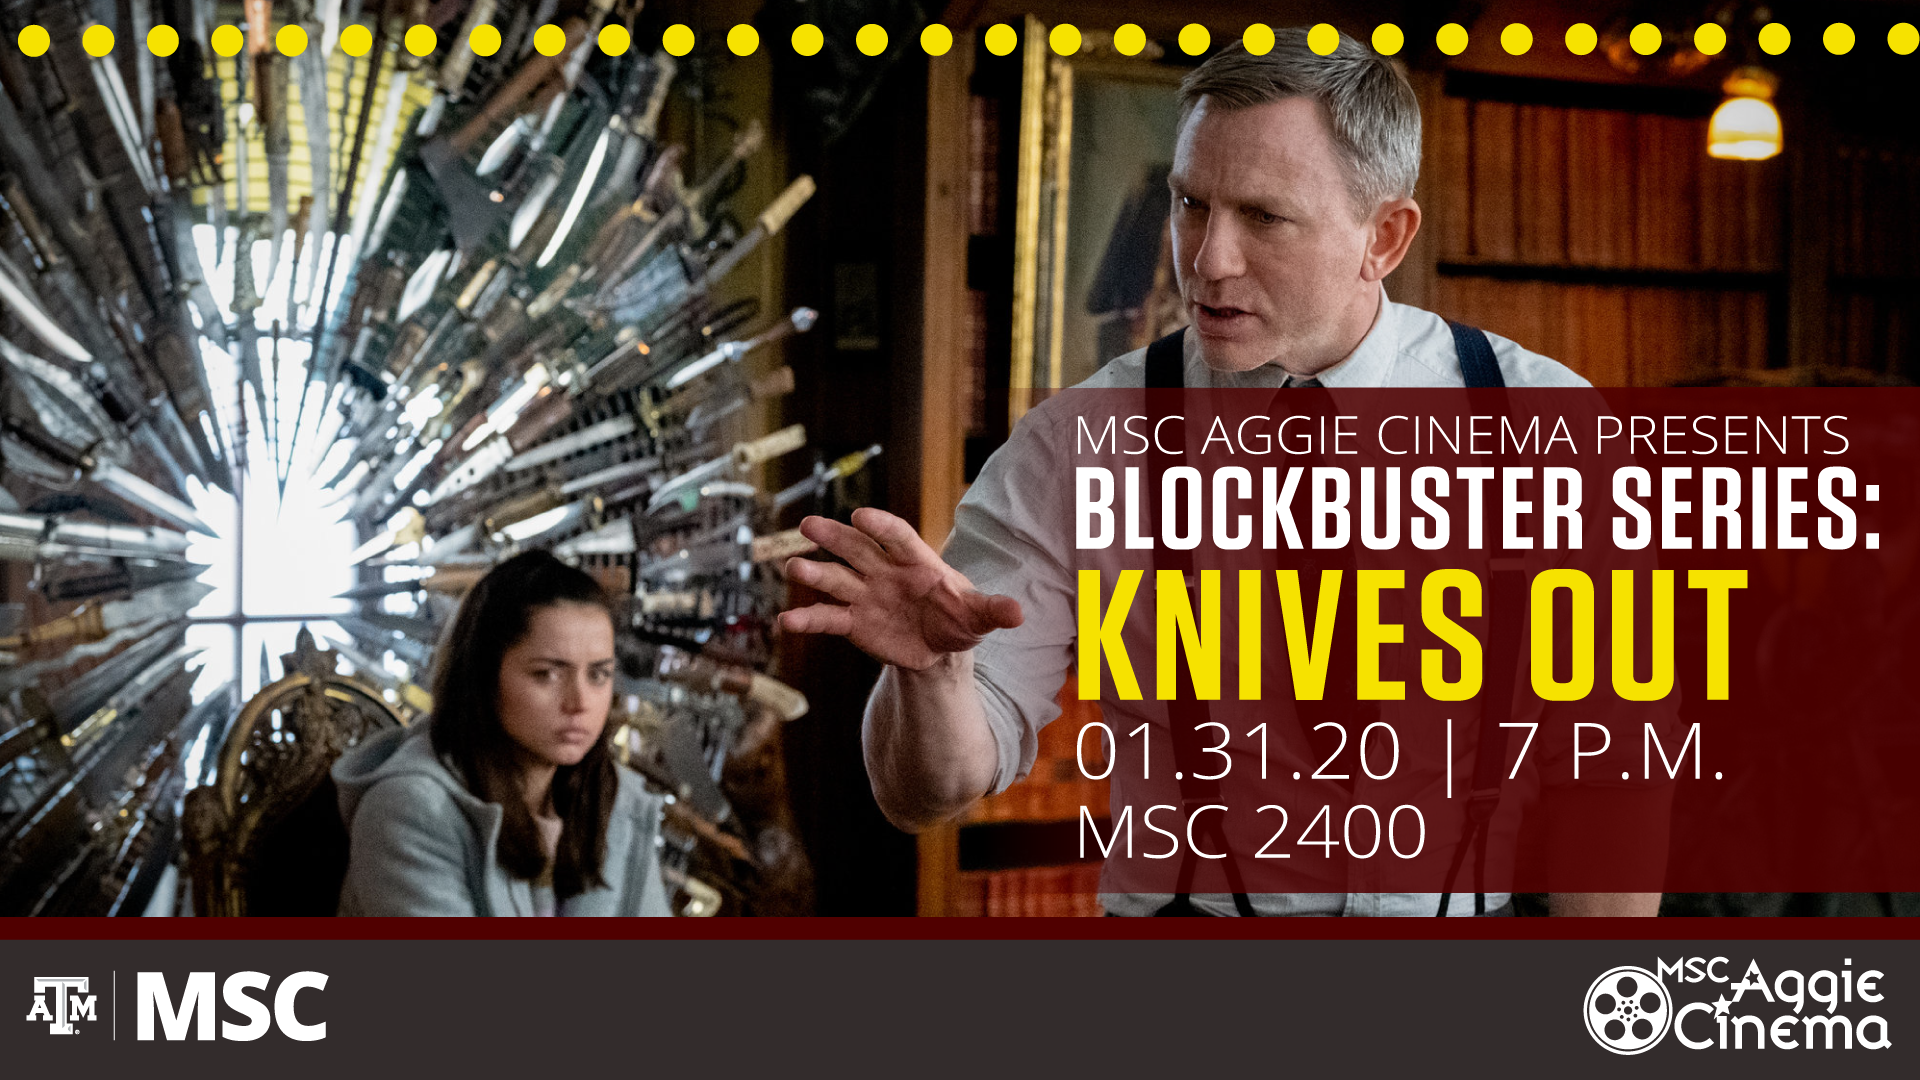 Movie Poster of Knives Out - Free screening on January 31, 2020 at 7 p.m. in MSC 2400